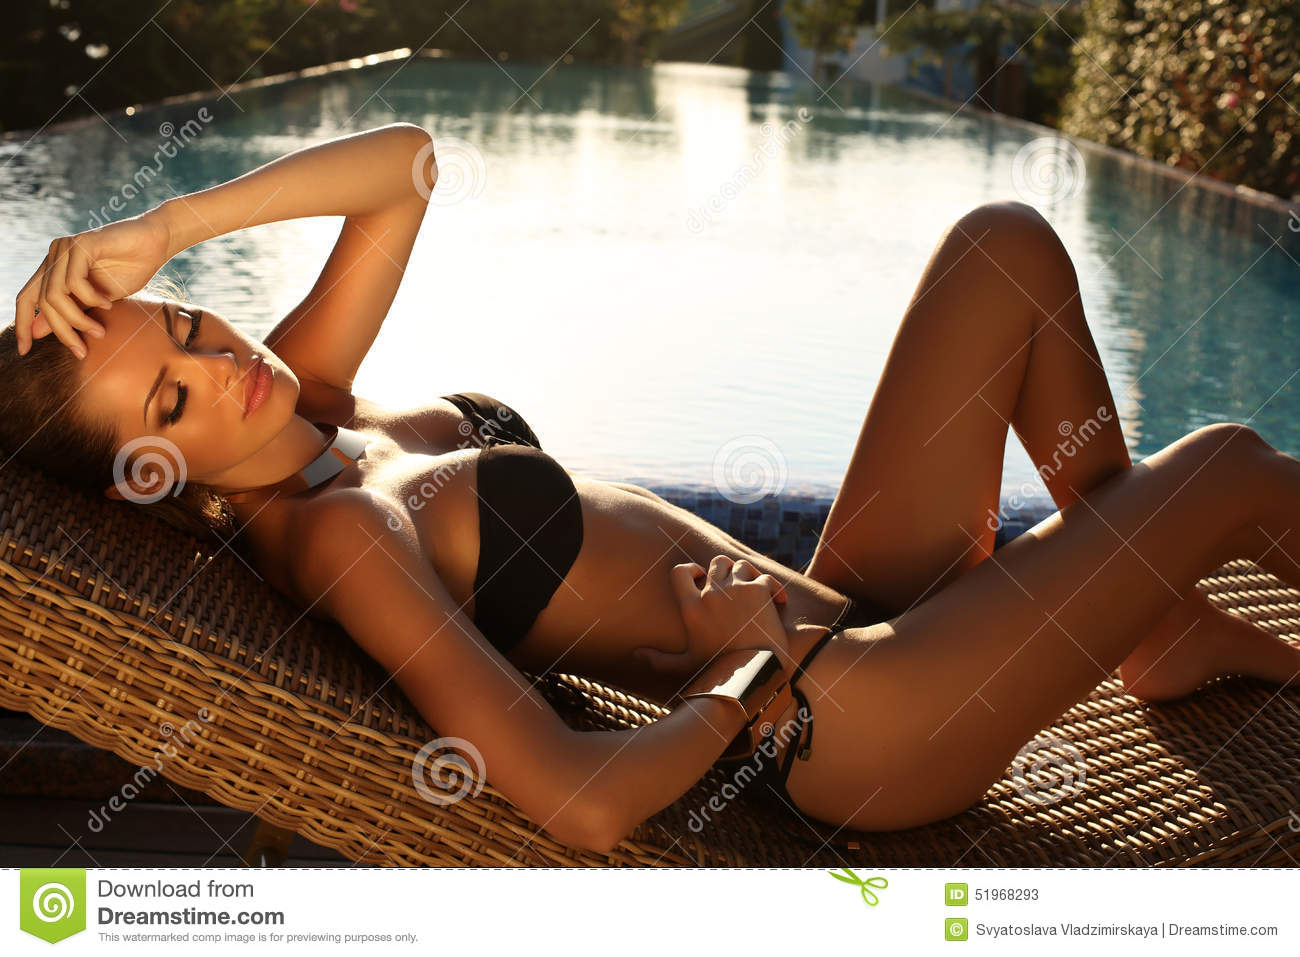 blond girl in black bikini relaxing beside a swimming pool